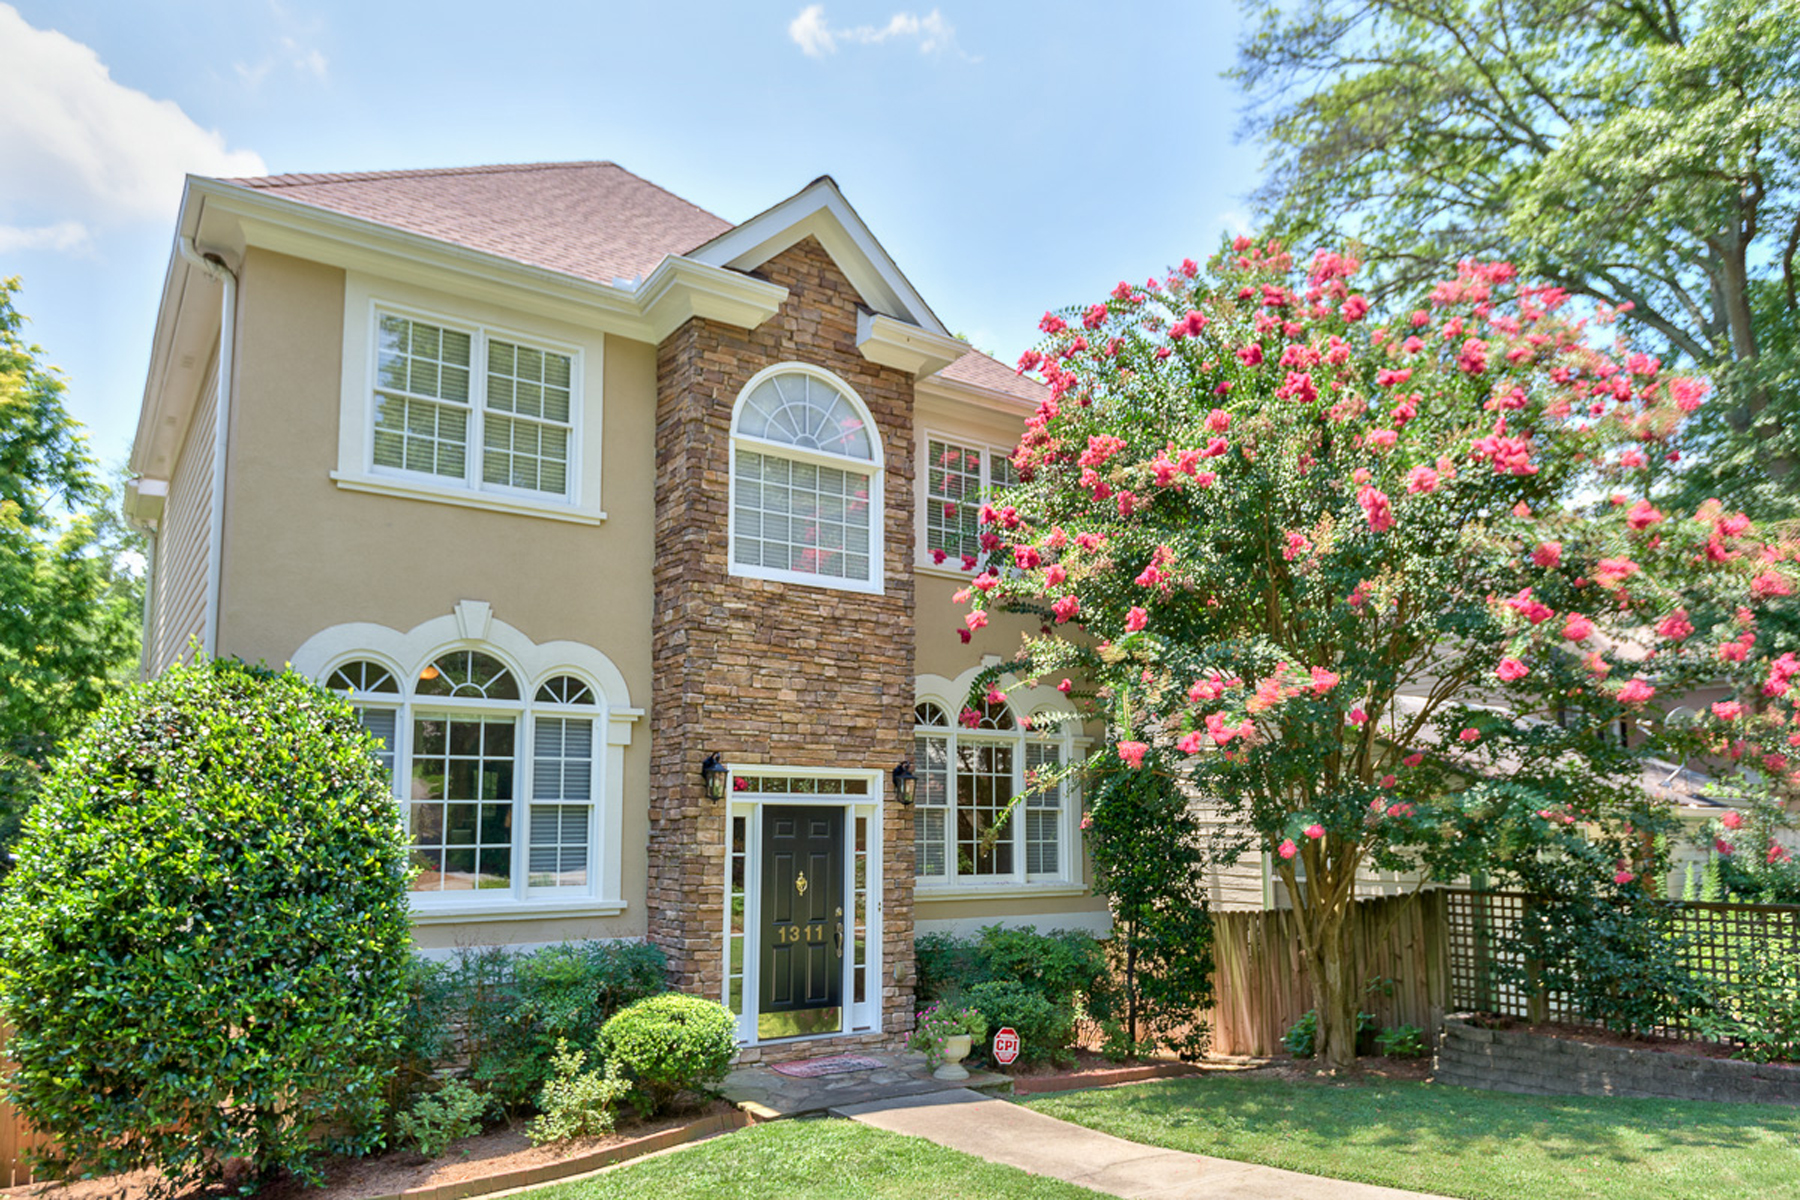 Single Family Home for Sale at Solidly Built And Has It All 1311 Oaklawn Avenue Ashford Park, Atlanta, Georgia 30319 United States